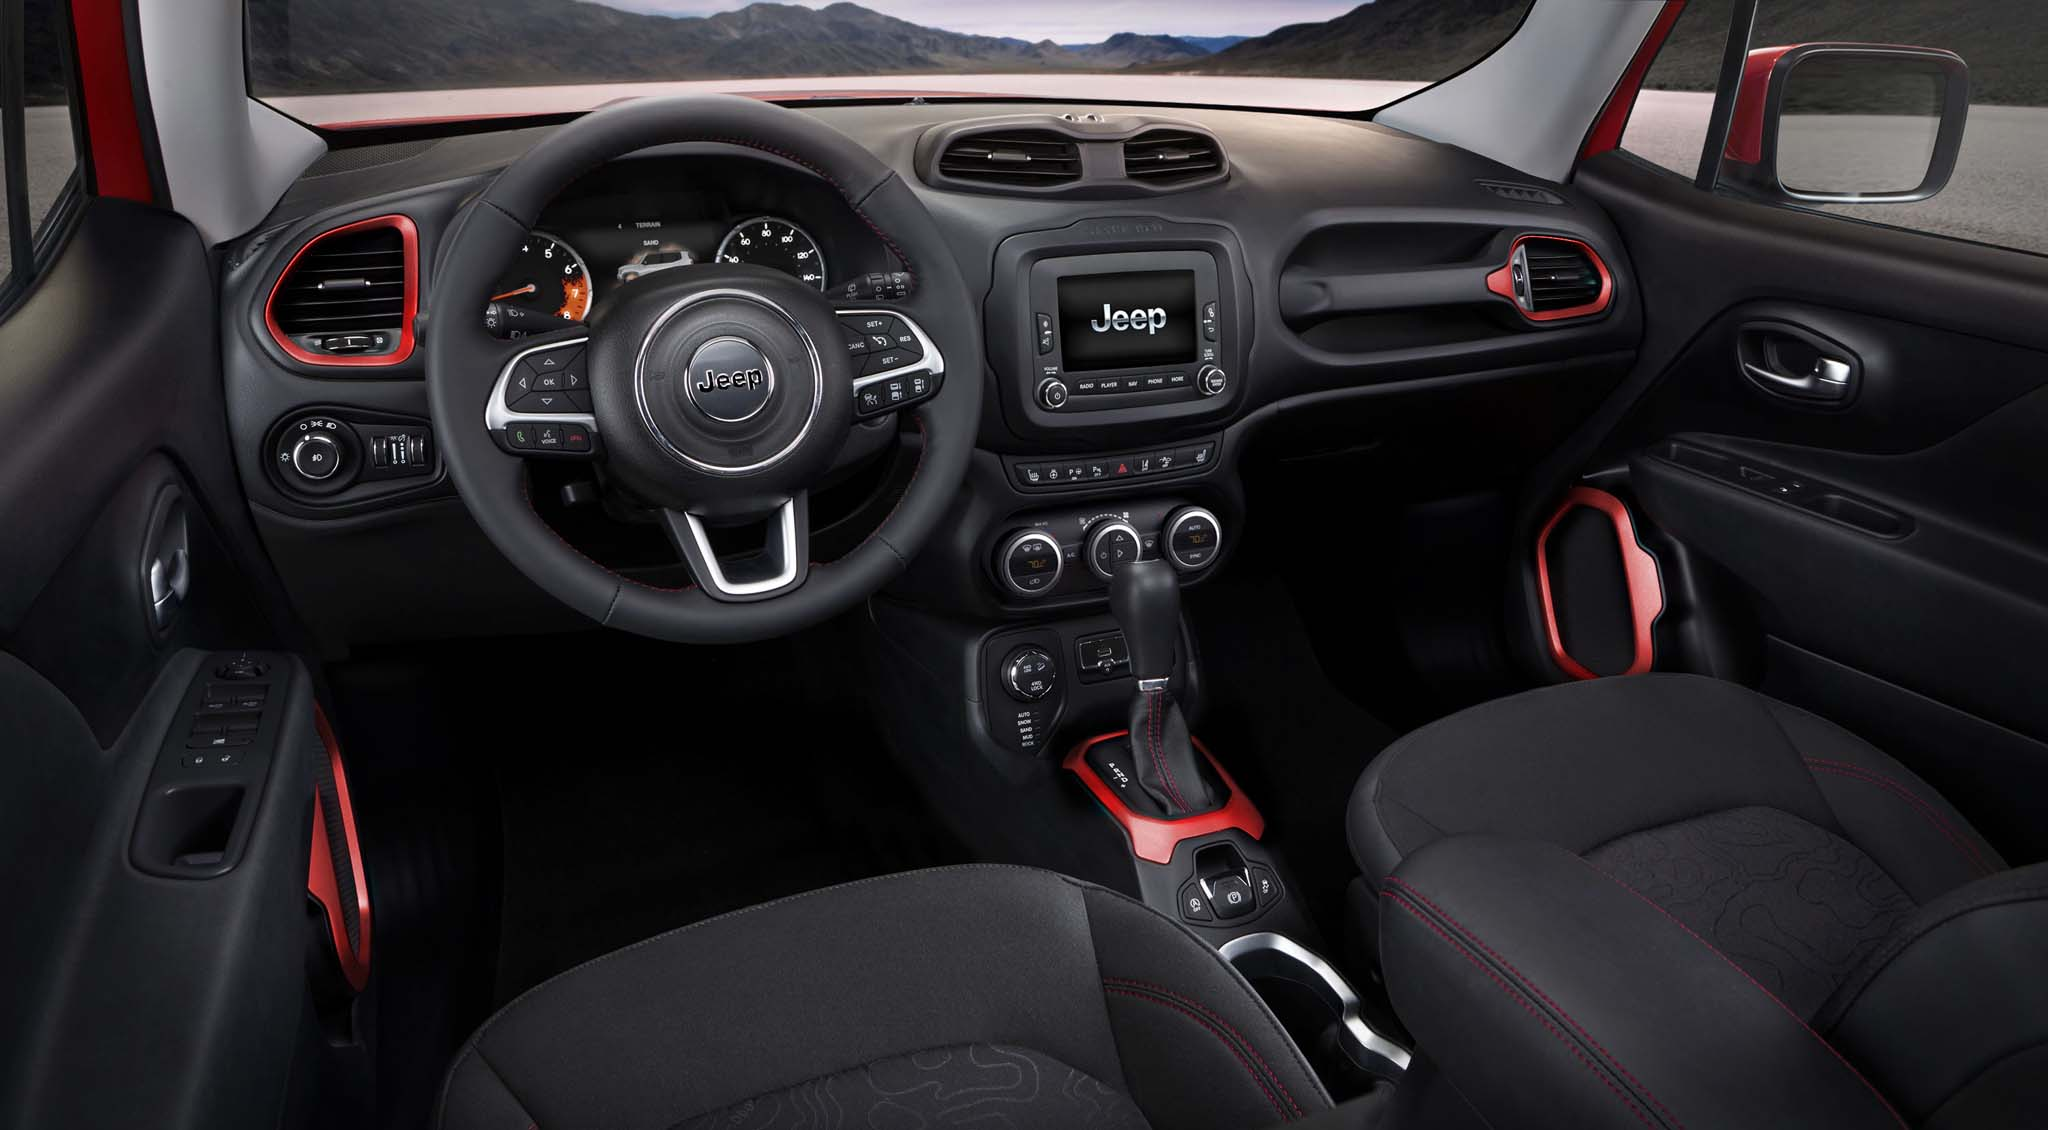 2015 Jeep Renegade Trailhawk interior view